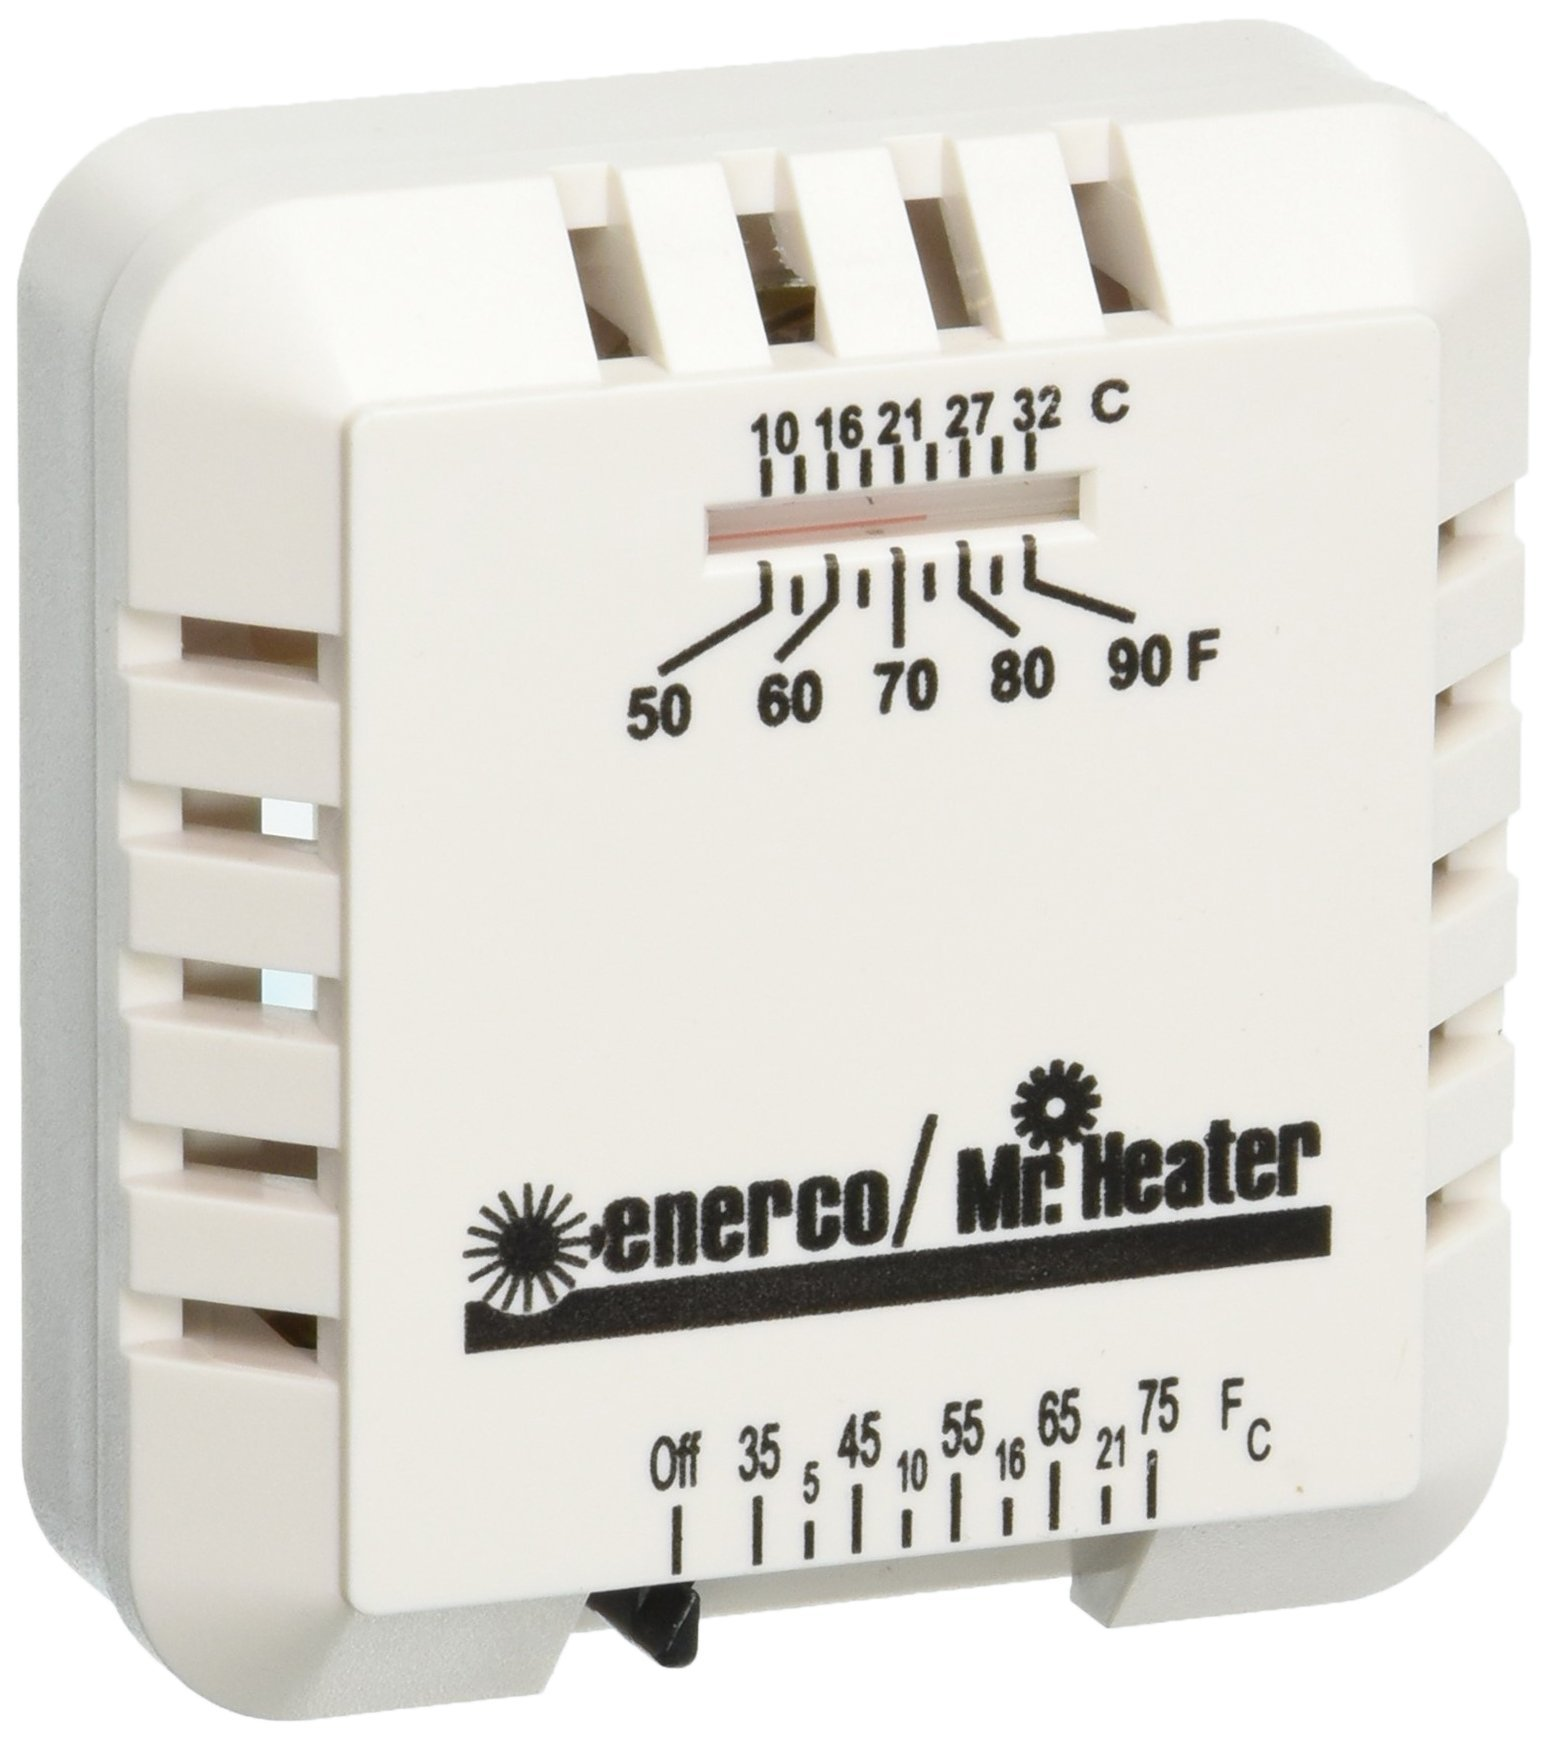 Mr. Heater Thermostat for Heater by Mr. Heater